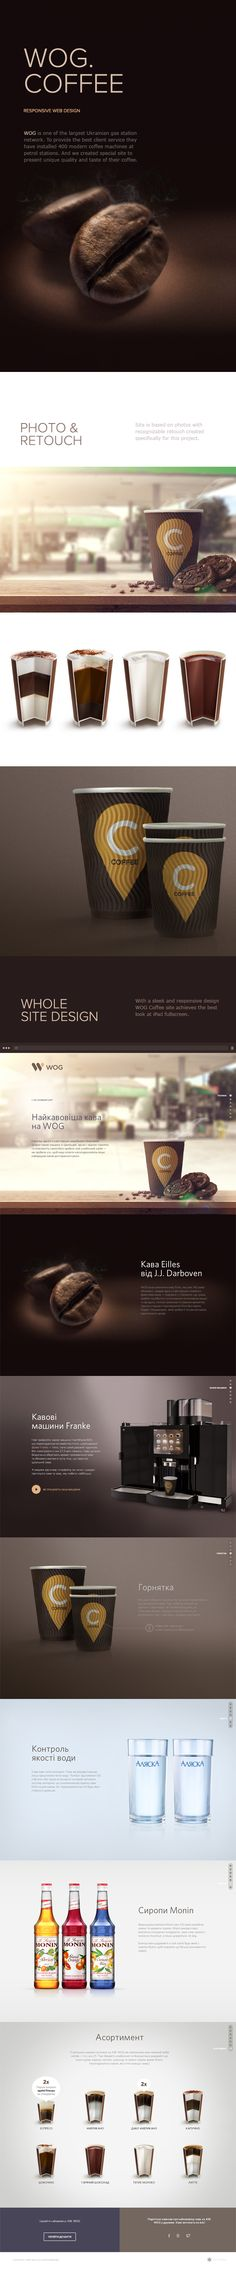 WOG Coffee site by Aimbulance Agency, via Behance